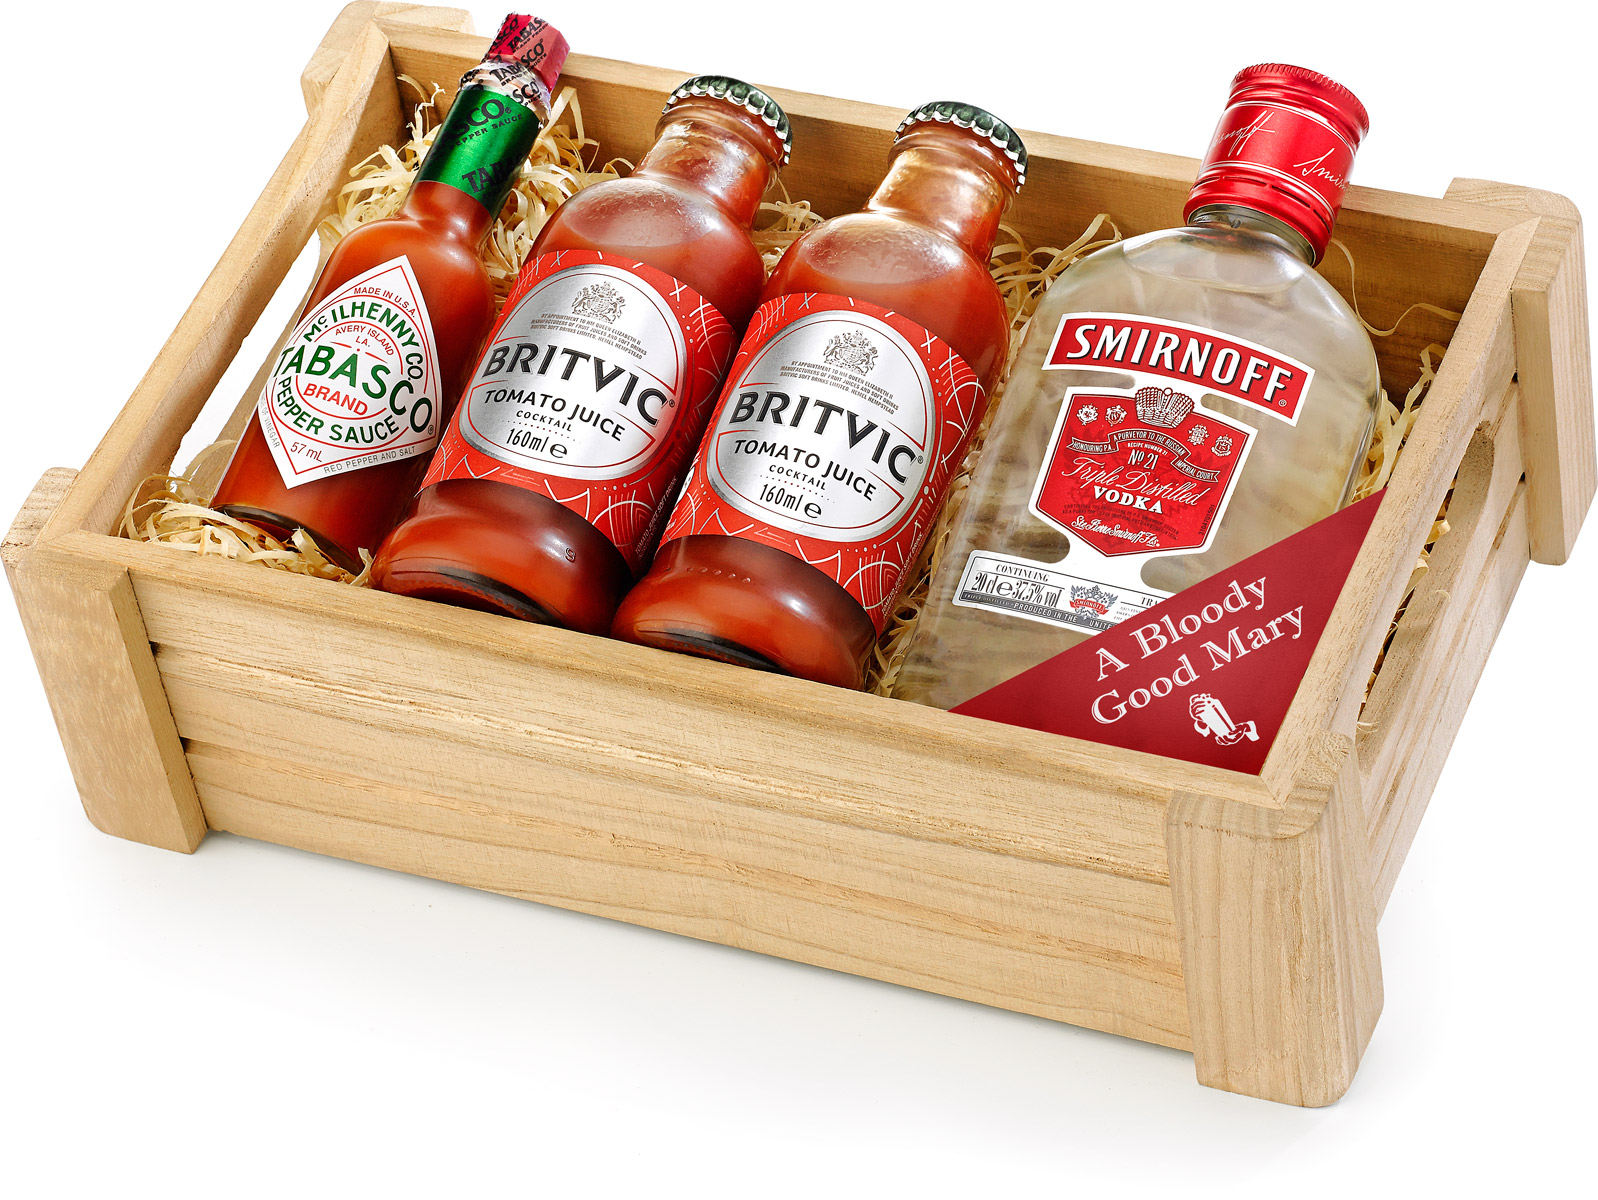 Bloody Mary Cocktail Set in Wooden Crate